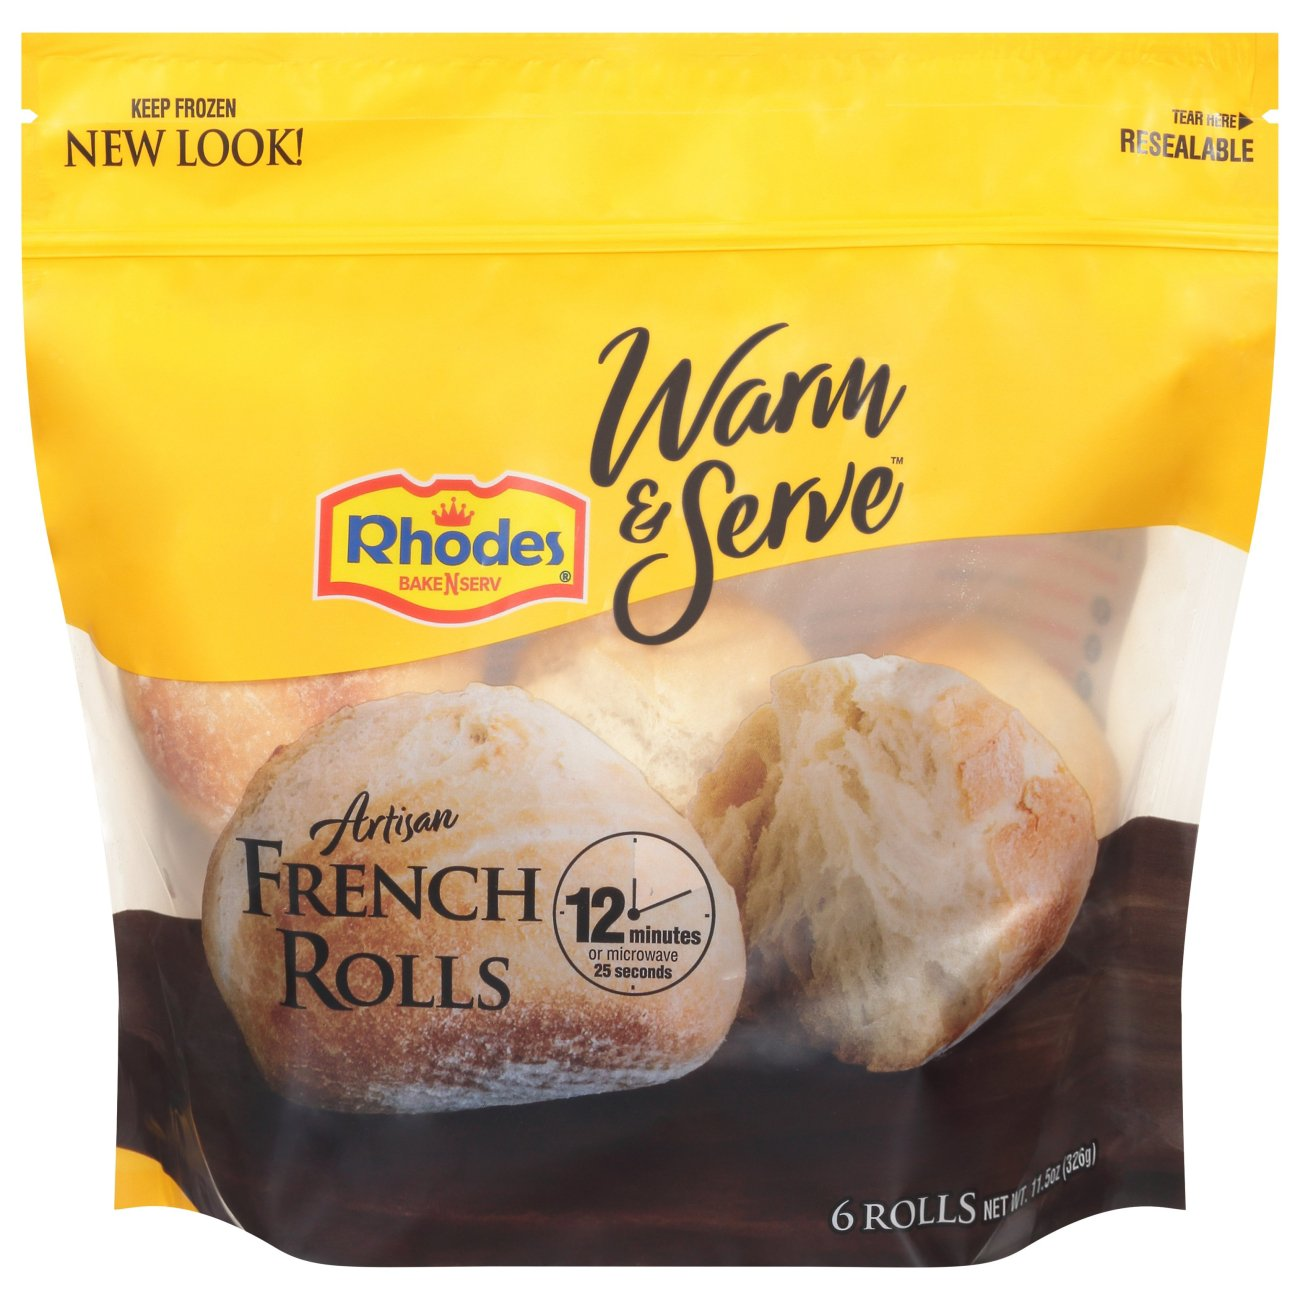 Rhodes Bake N Serv Artisan French Rolls Shop Bread At H E B